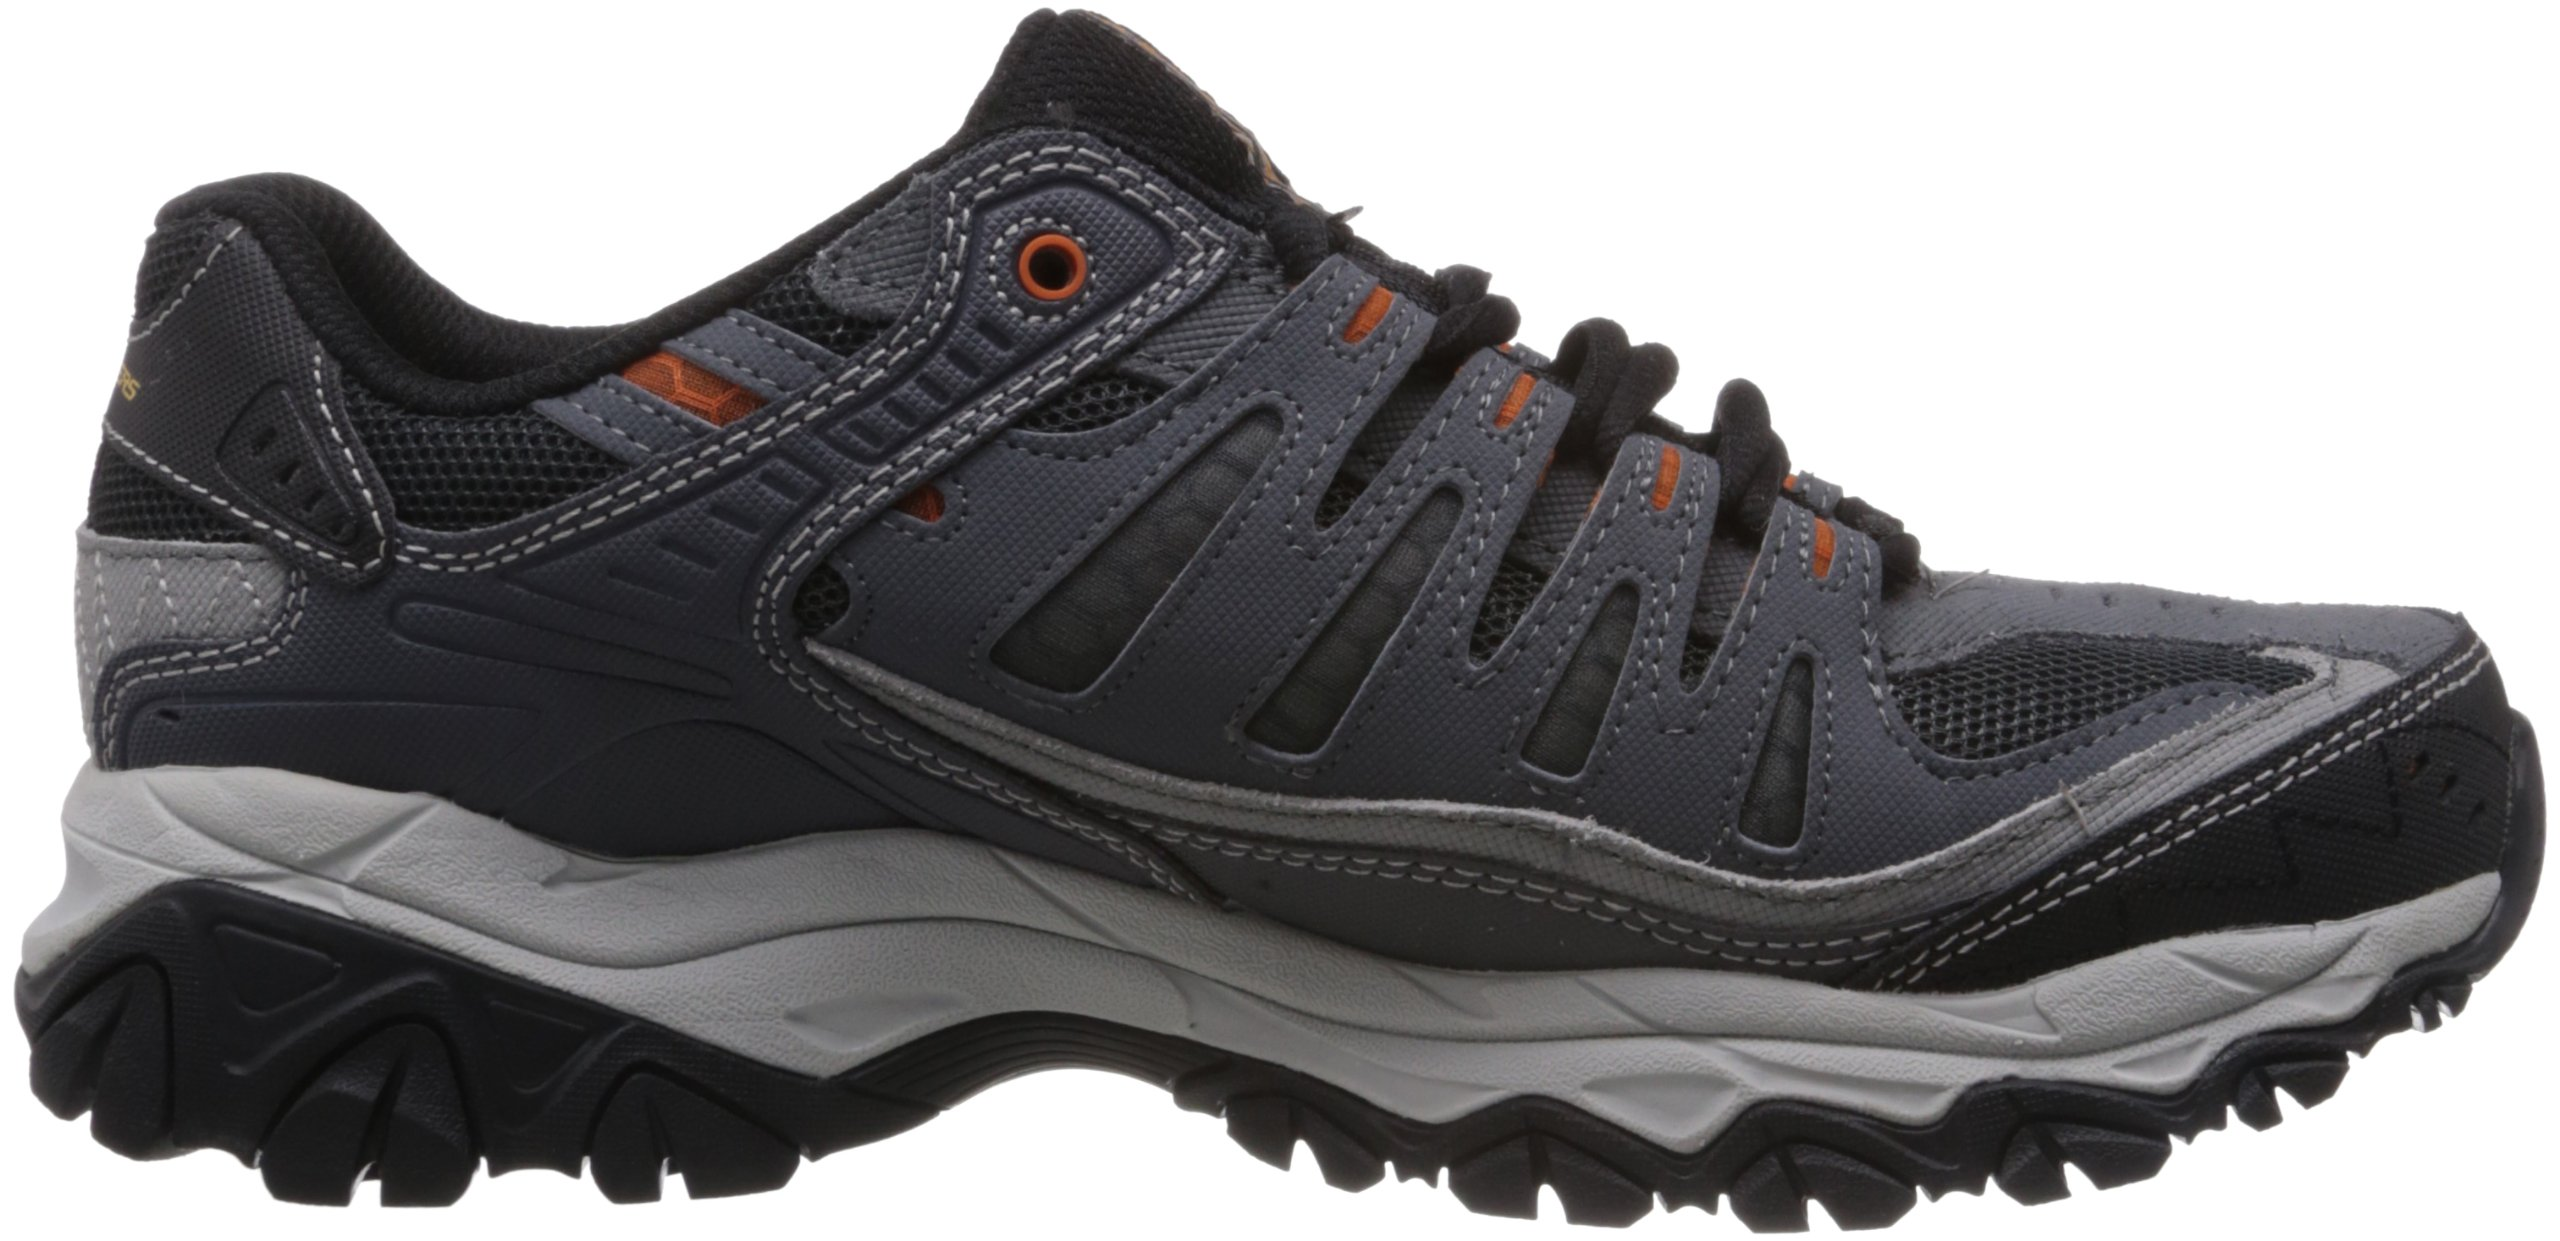 Skechers Sport Men's Afterburn Memory Foam Lace-Up Sneaker, Charcoal, 7 M US by Skechers (Image #6)